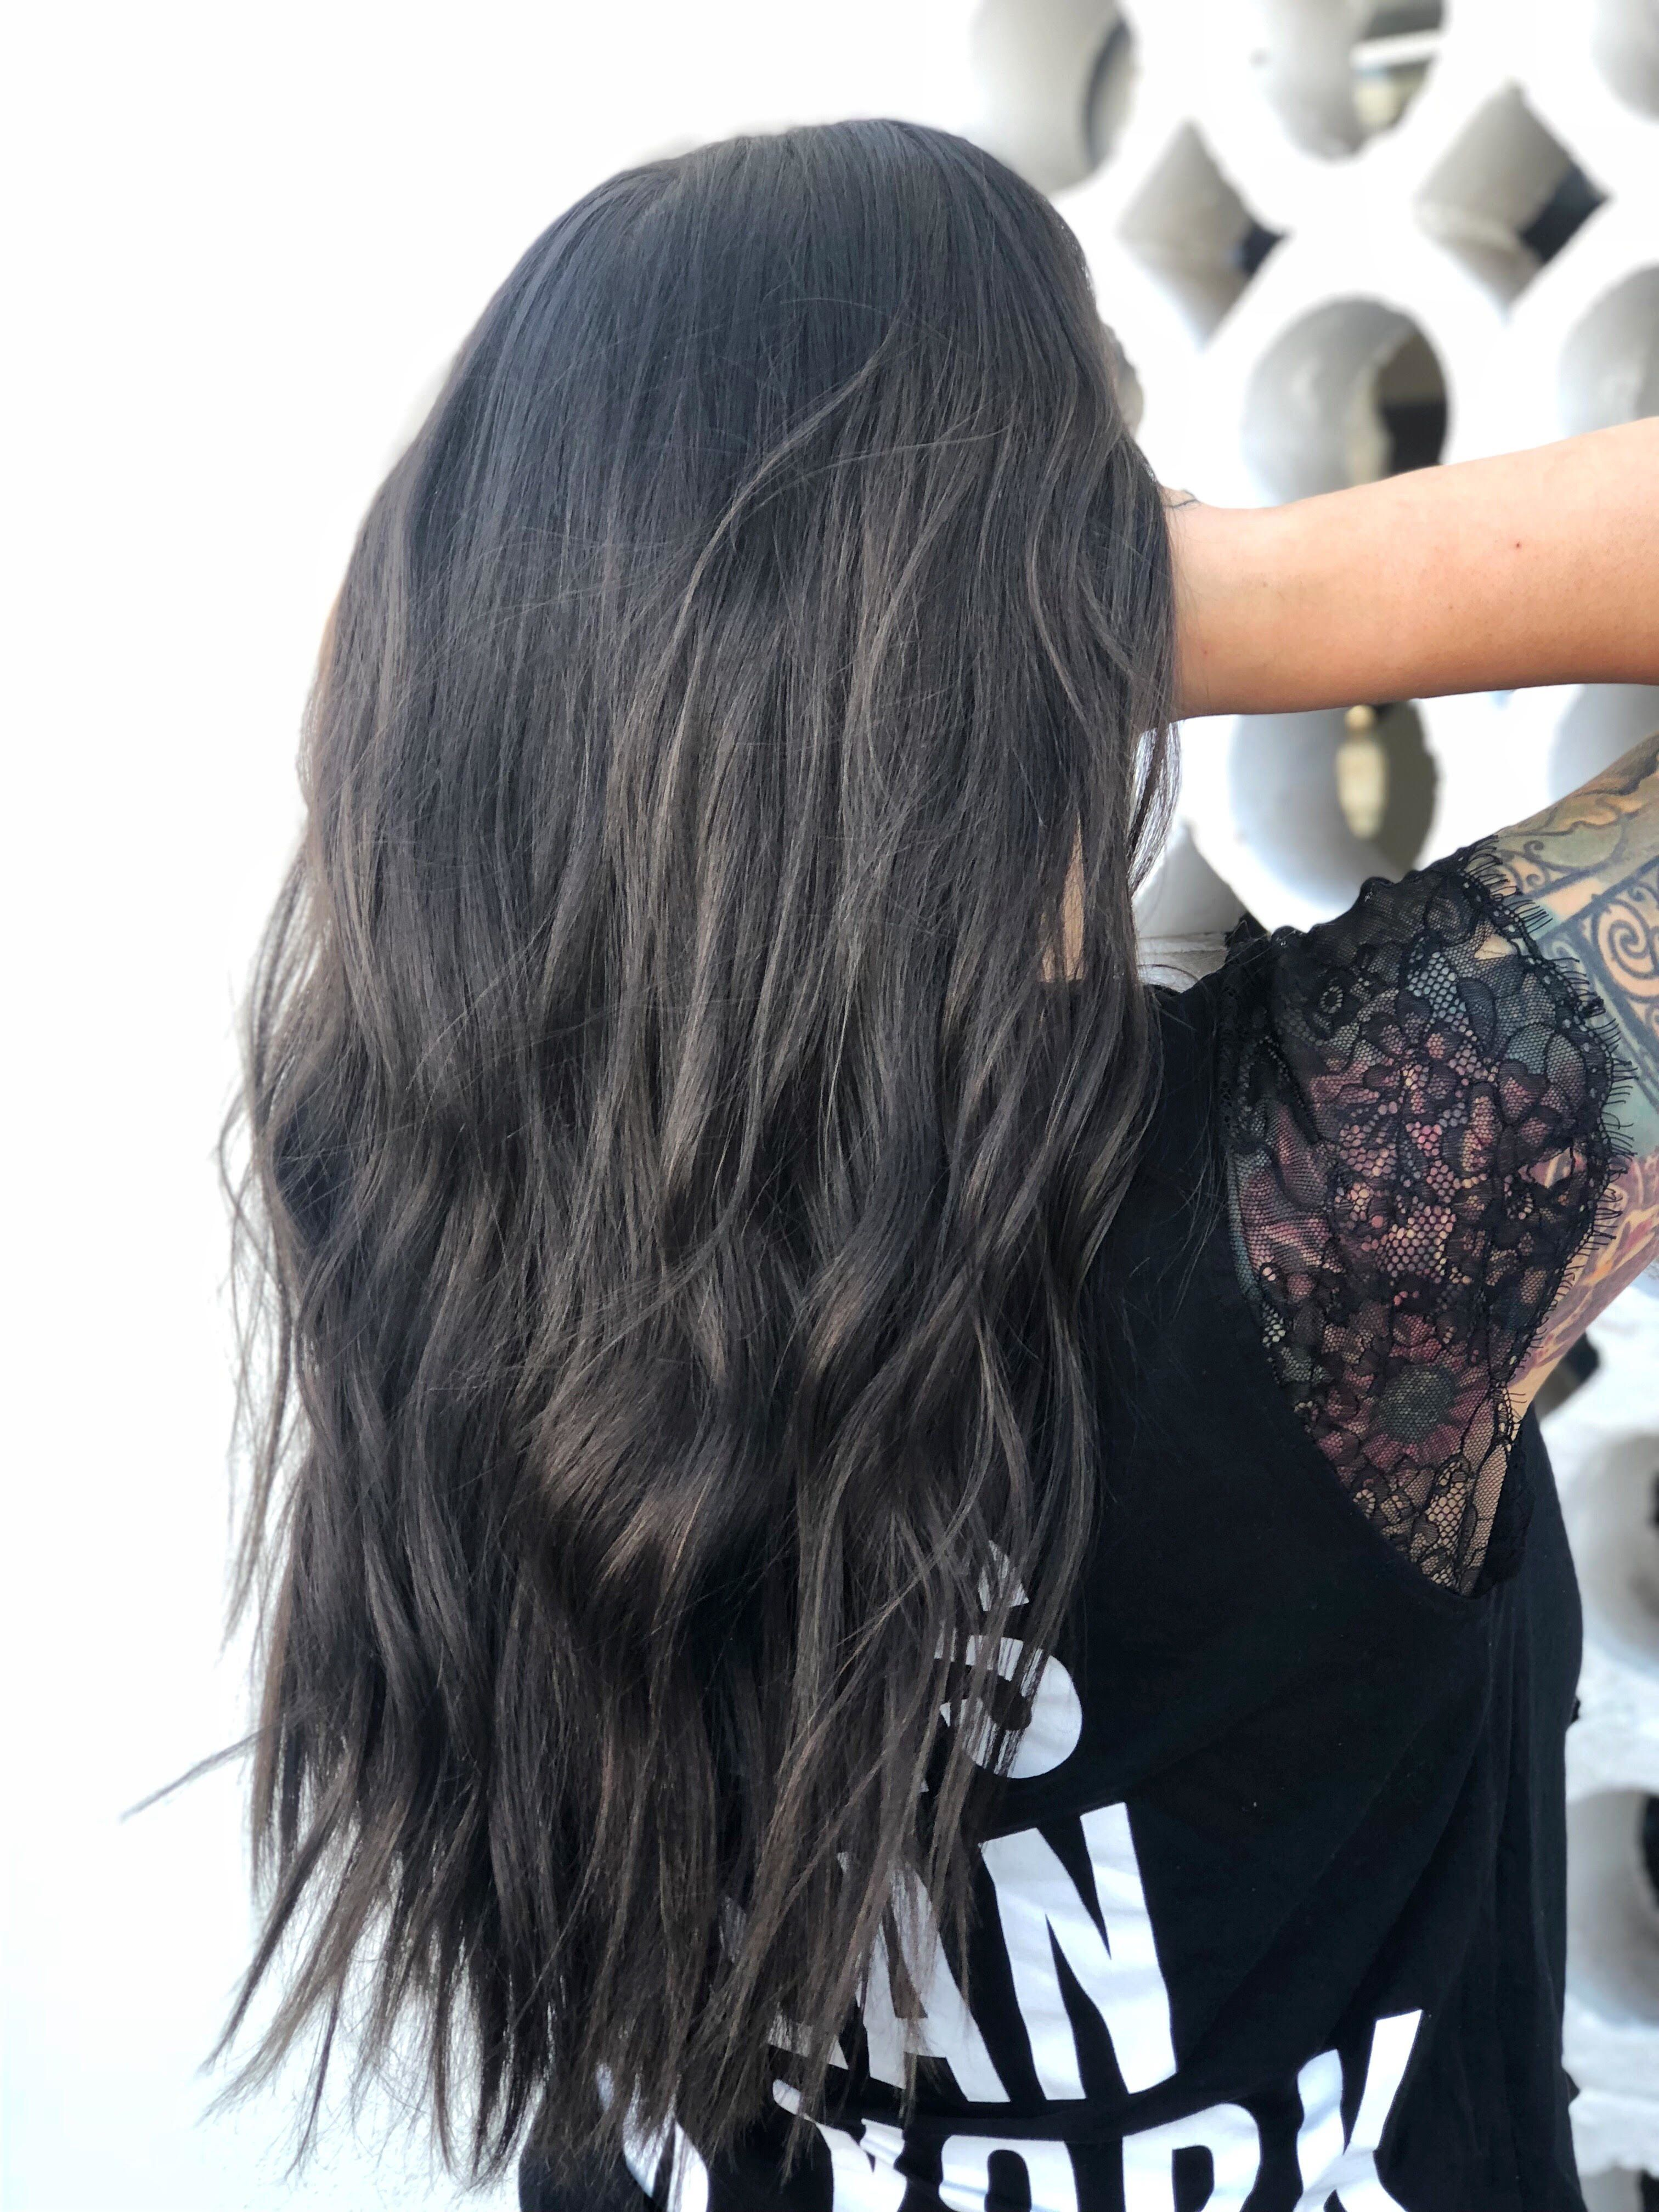 Cool Toned Balayage Lets Those With Dark Hair Try The Beloved Hair Color Technique Hair Color Techniques Black Hair Balayage Cool Tone Brown Hair